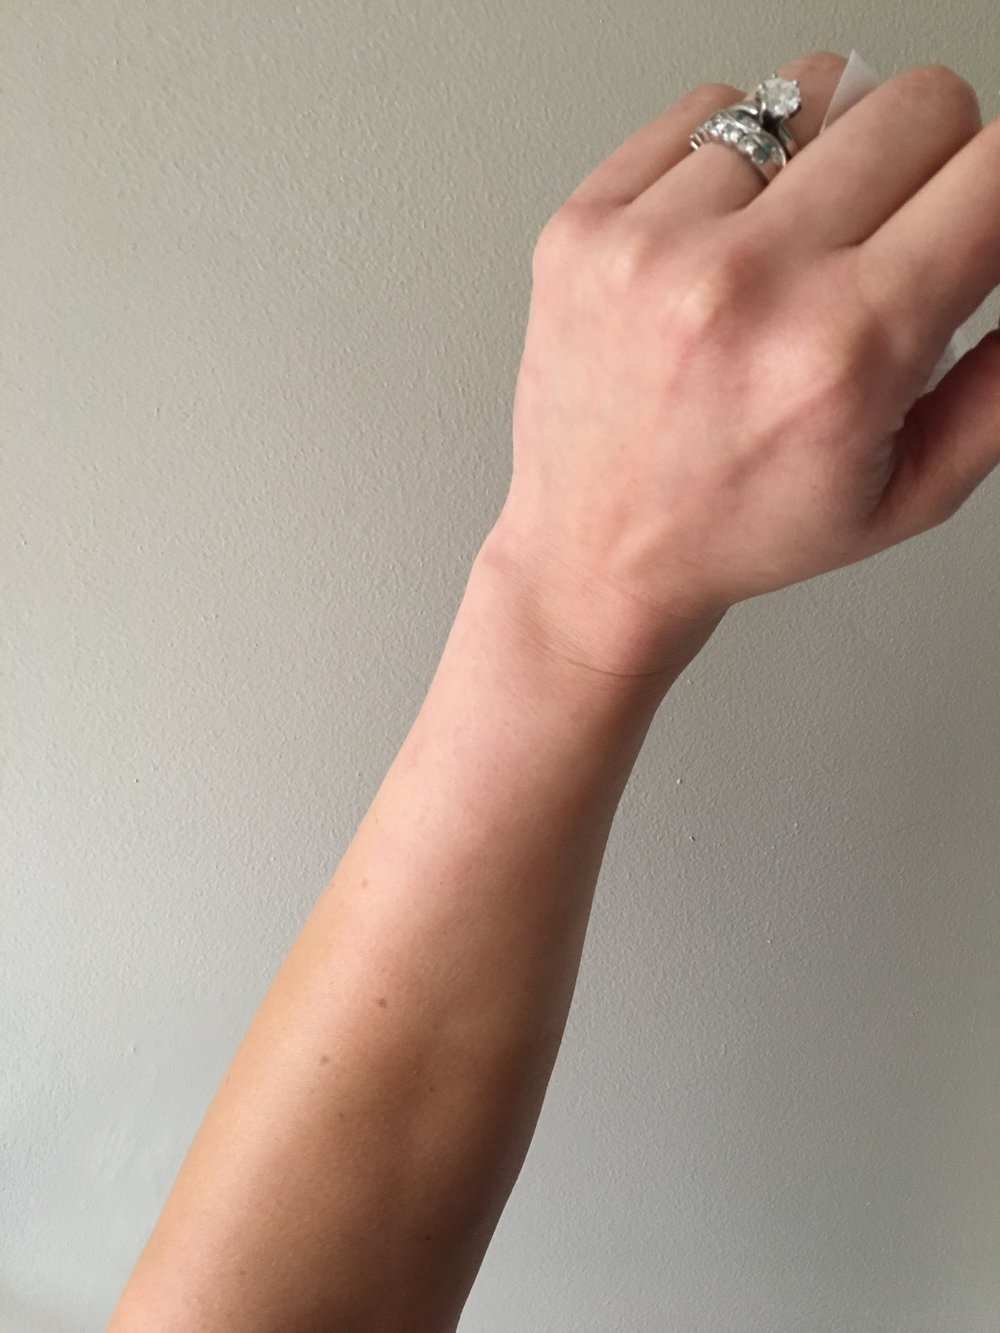 Vita Liberata Body Blur  in Medium from elbow, nothing at wrist, and yes I'm holding tissue